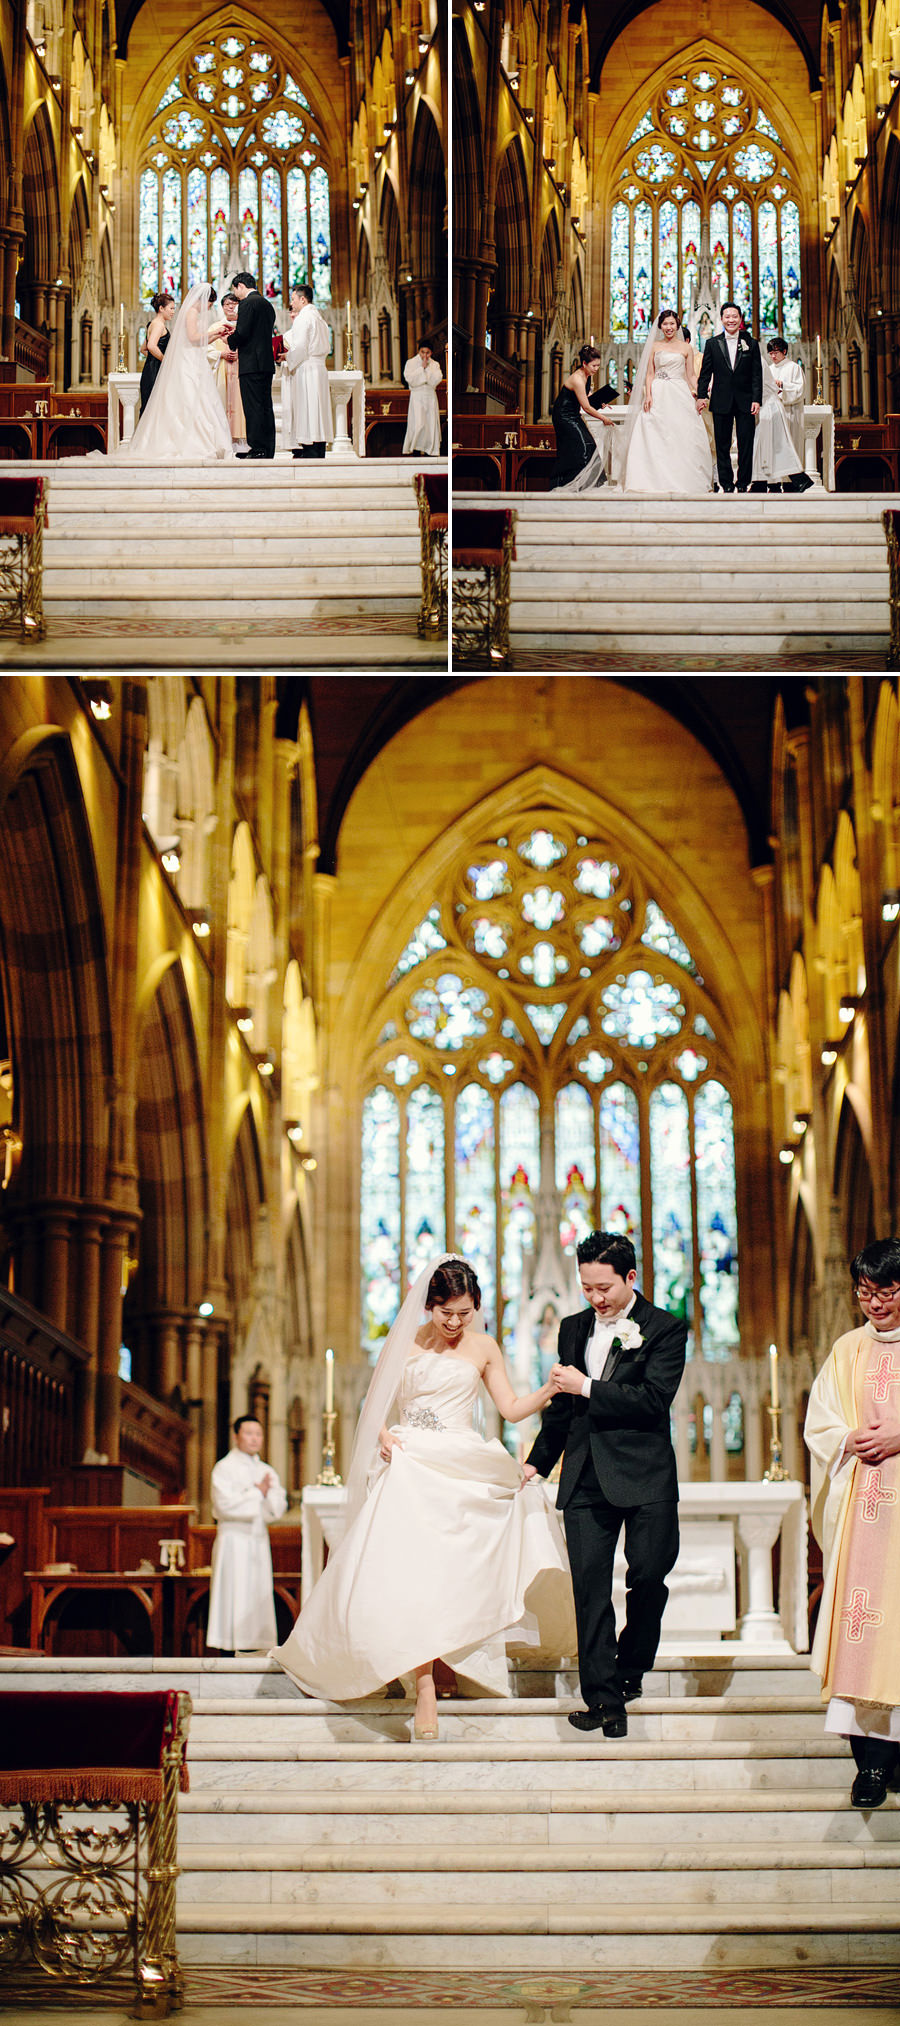 Sydney Wedding Photojournalism: Catholic Ceremony